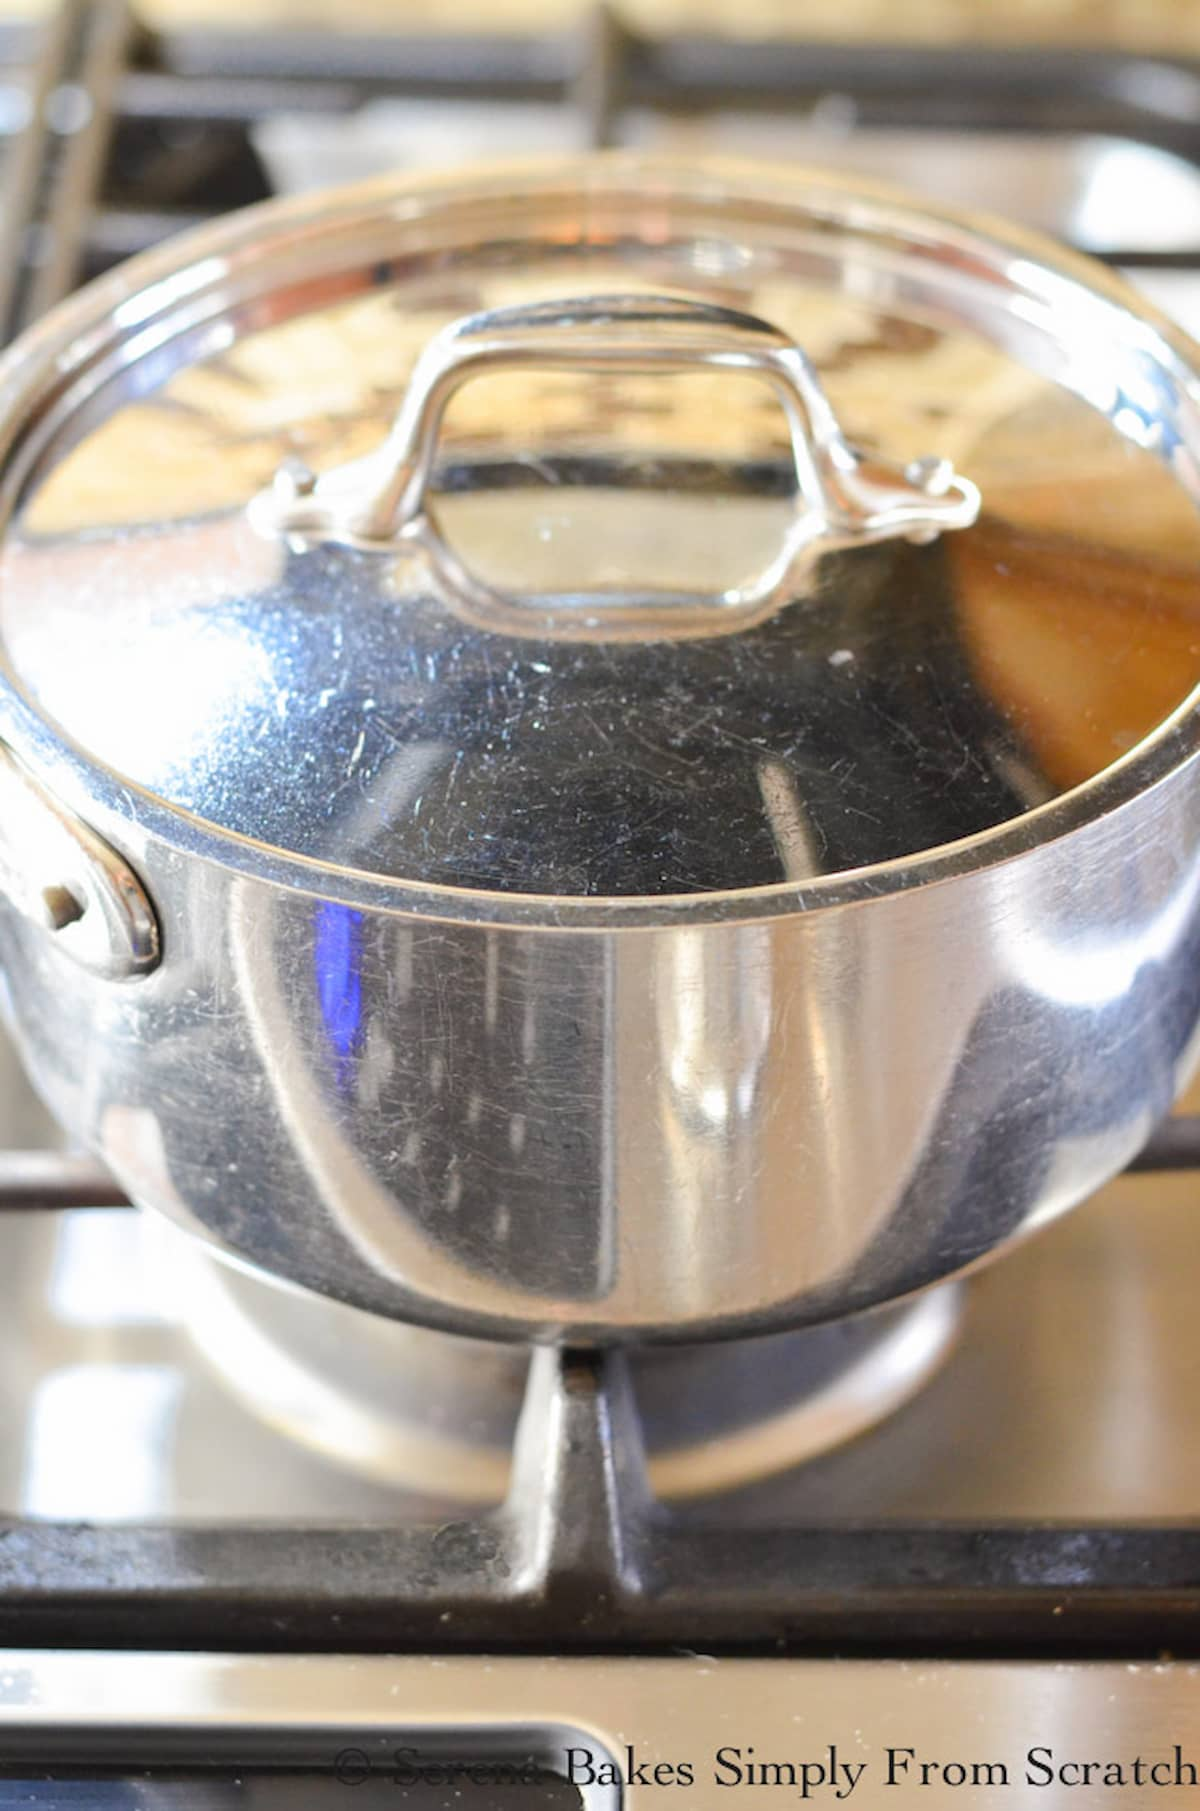 A stainless steel pot covered with a lid on a gas stove top.